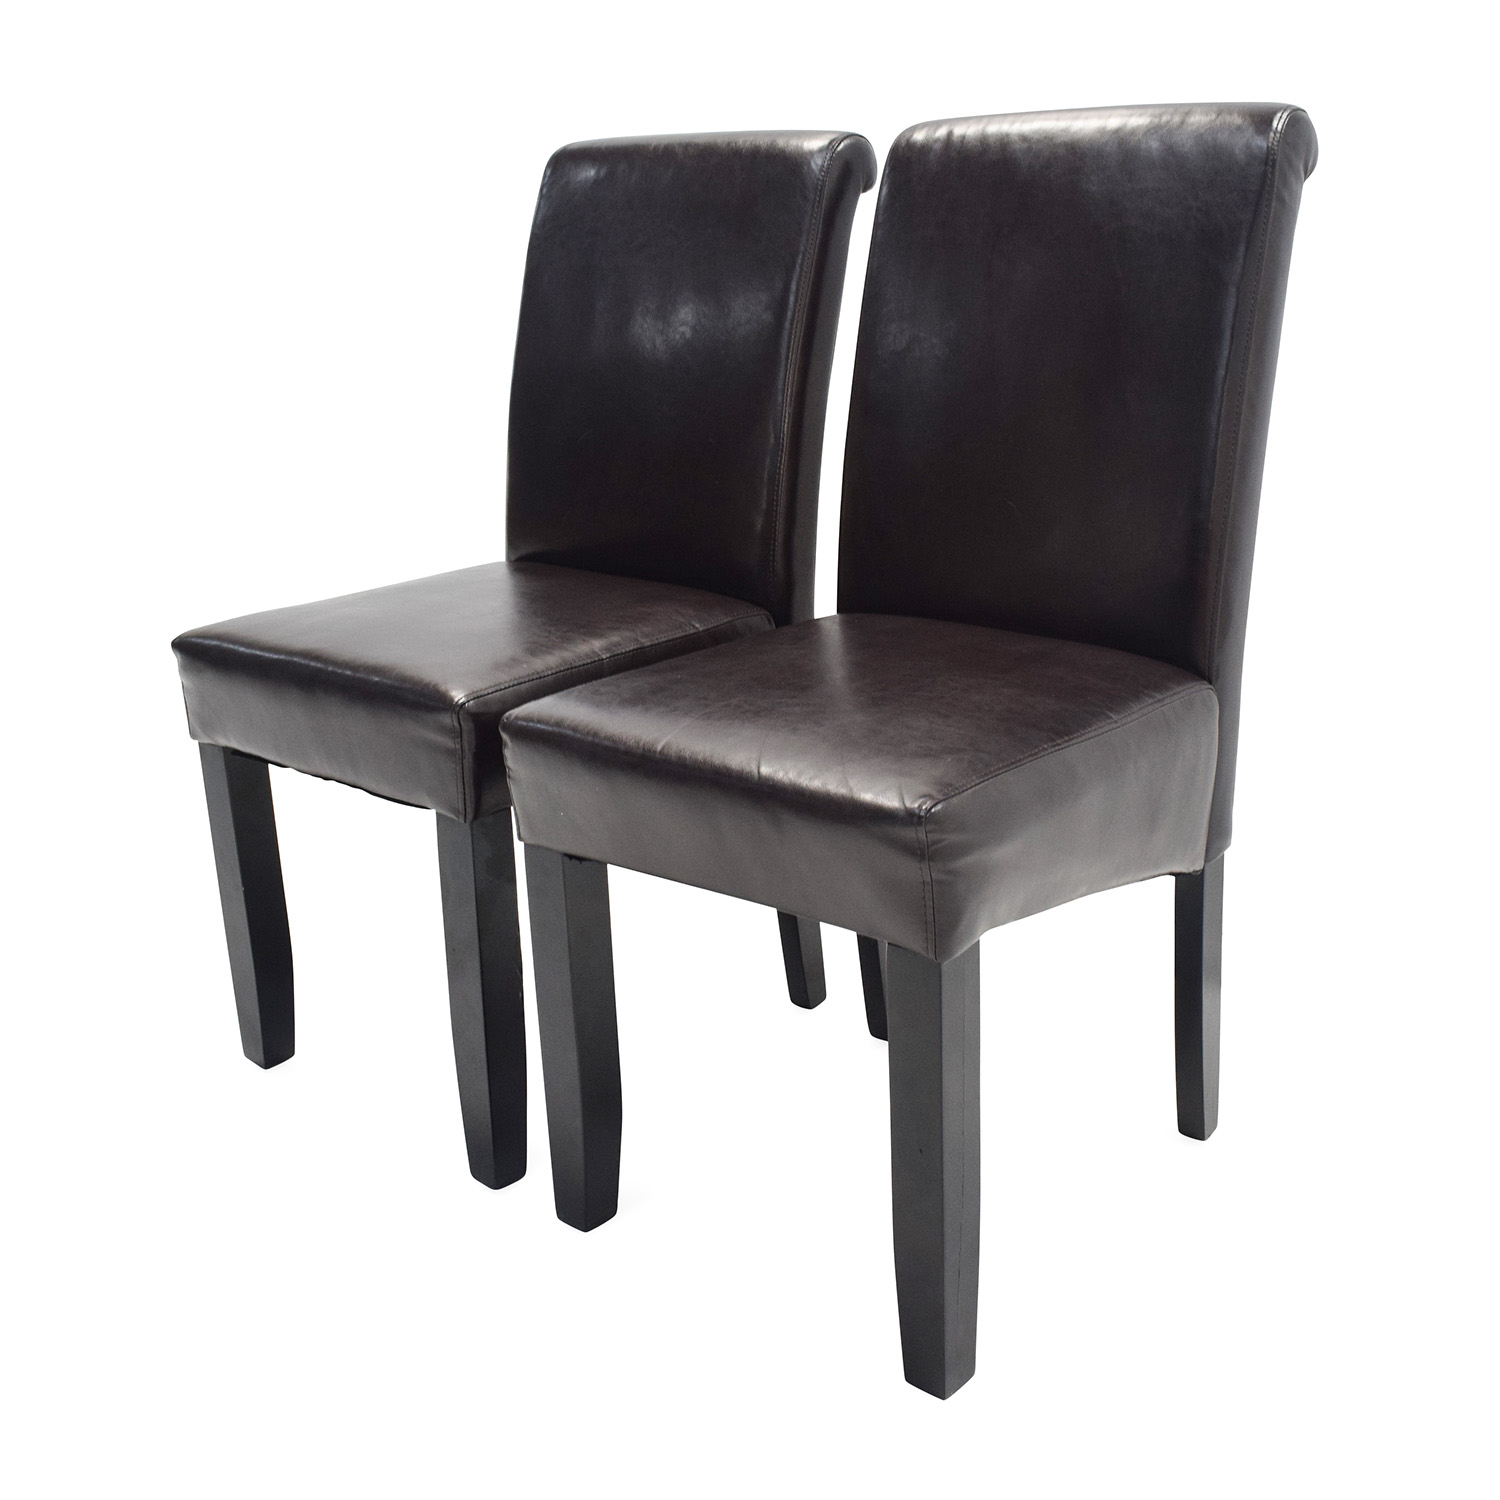 72 OFF Unknown Brand Espresso Leather Dining Chairs  : espresso leather dining chairs used from furnishare.com size 1500 x 1500 jpeg 237kB